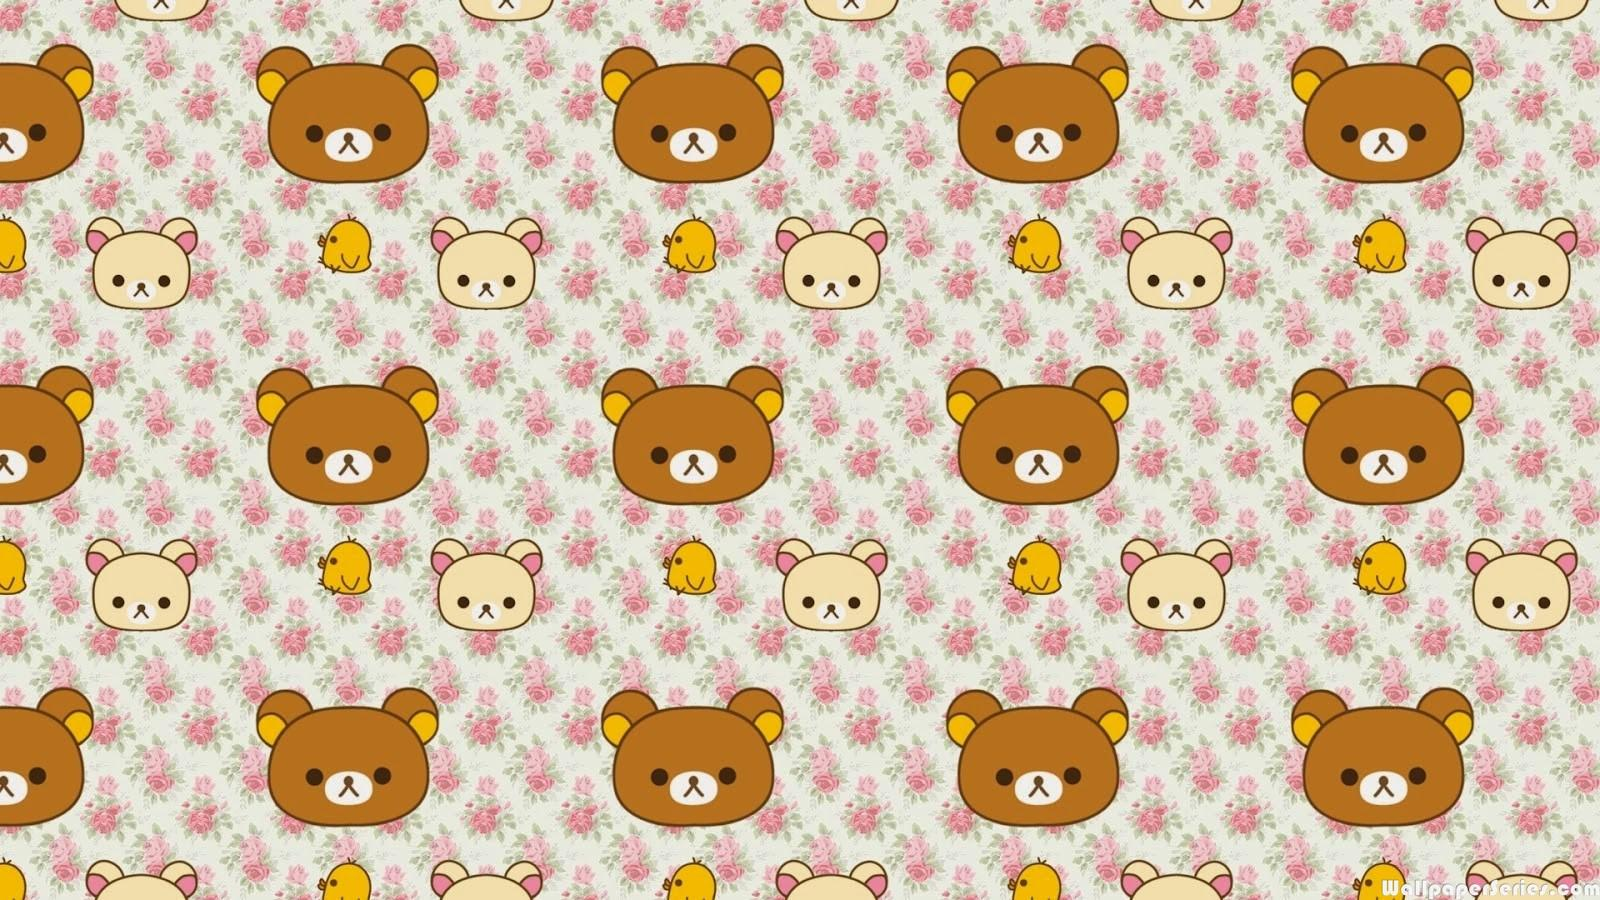 Cute wallpaper patterns 1600x900 voltagebd Image collections